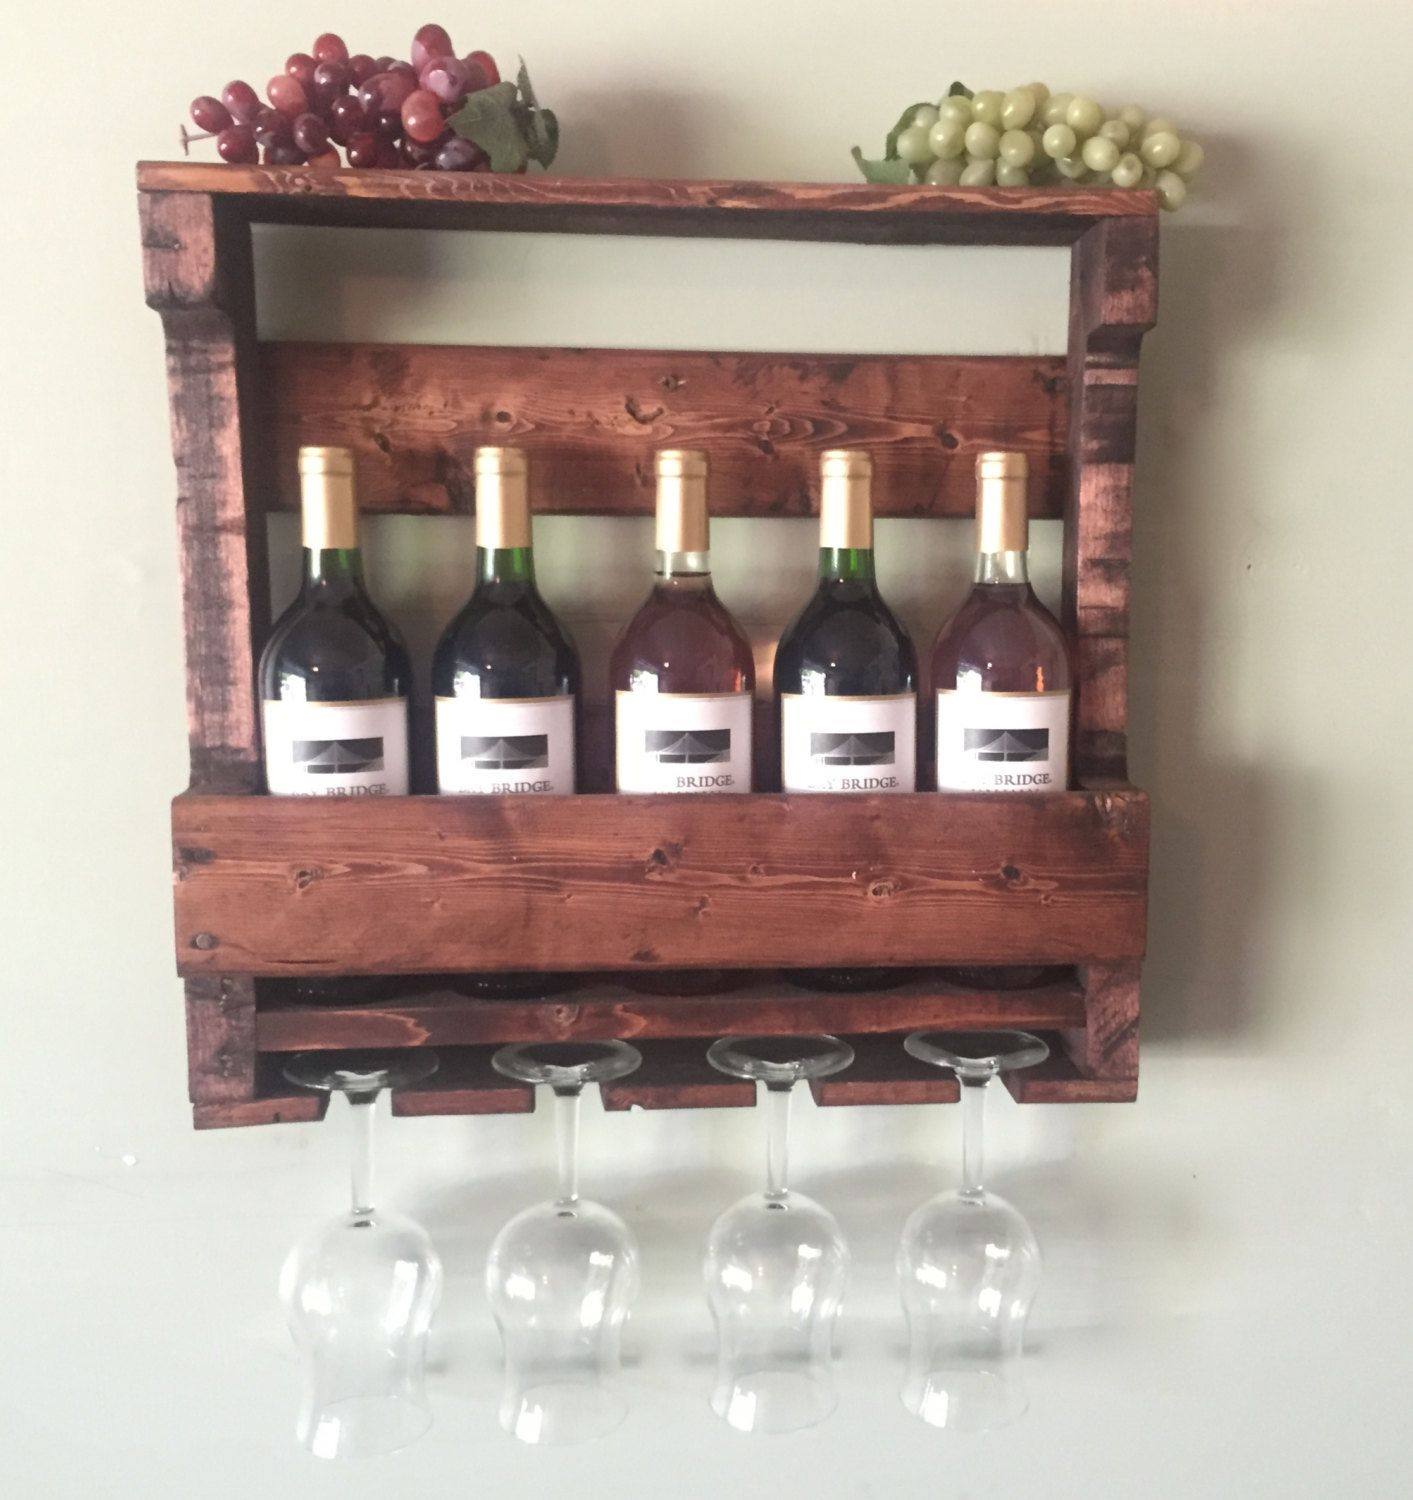 Rustic Wooden Wine Rack Gifts For Him Rustic Home Decor Housewarming Gift Wedding Gift Wine Rack W Modern Wine Glass Wood Wall Wine Rack Wooden Wine Rack